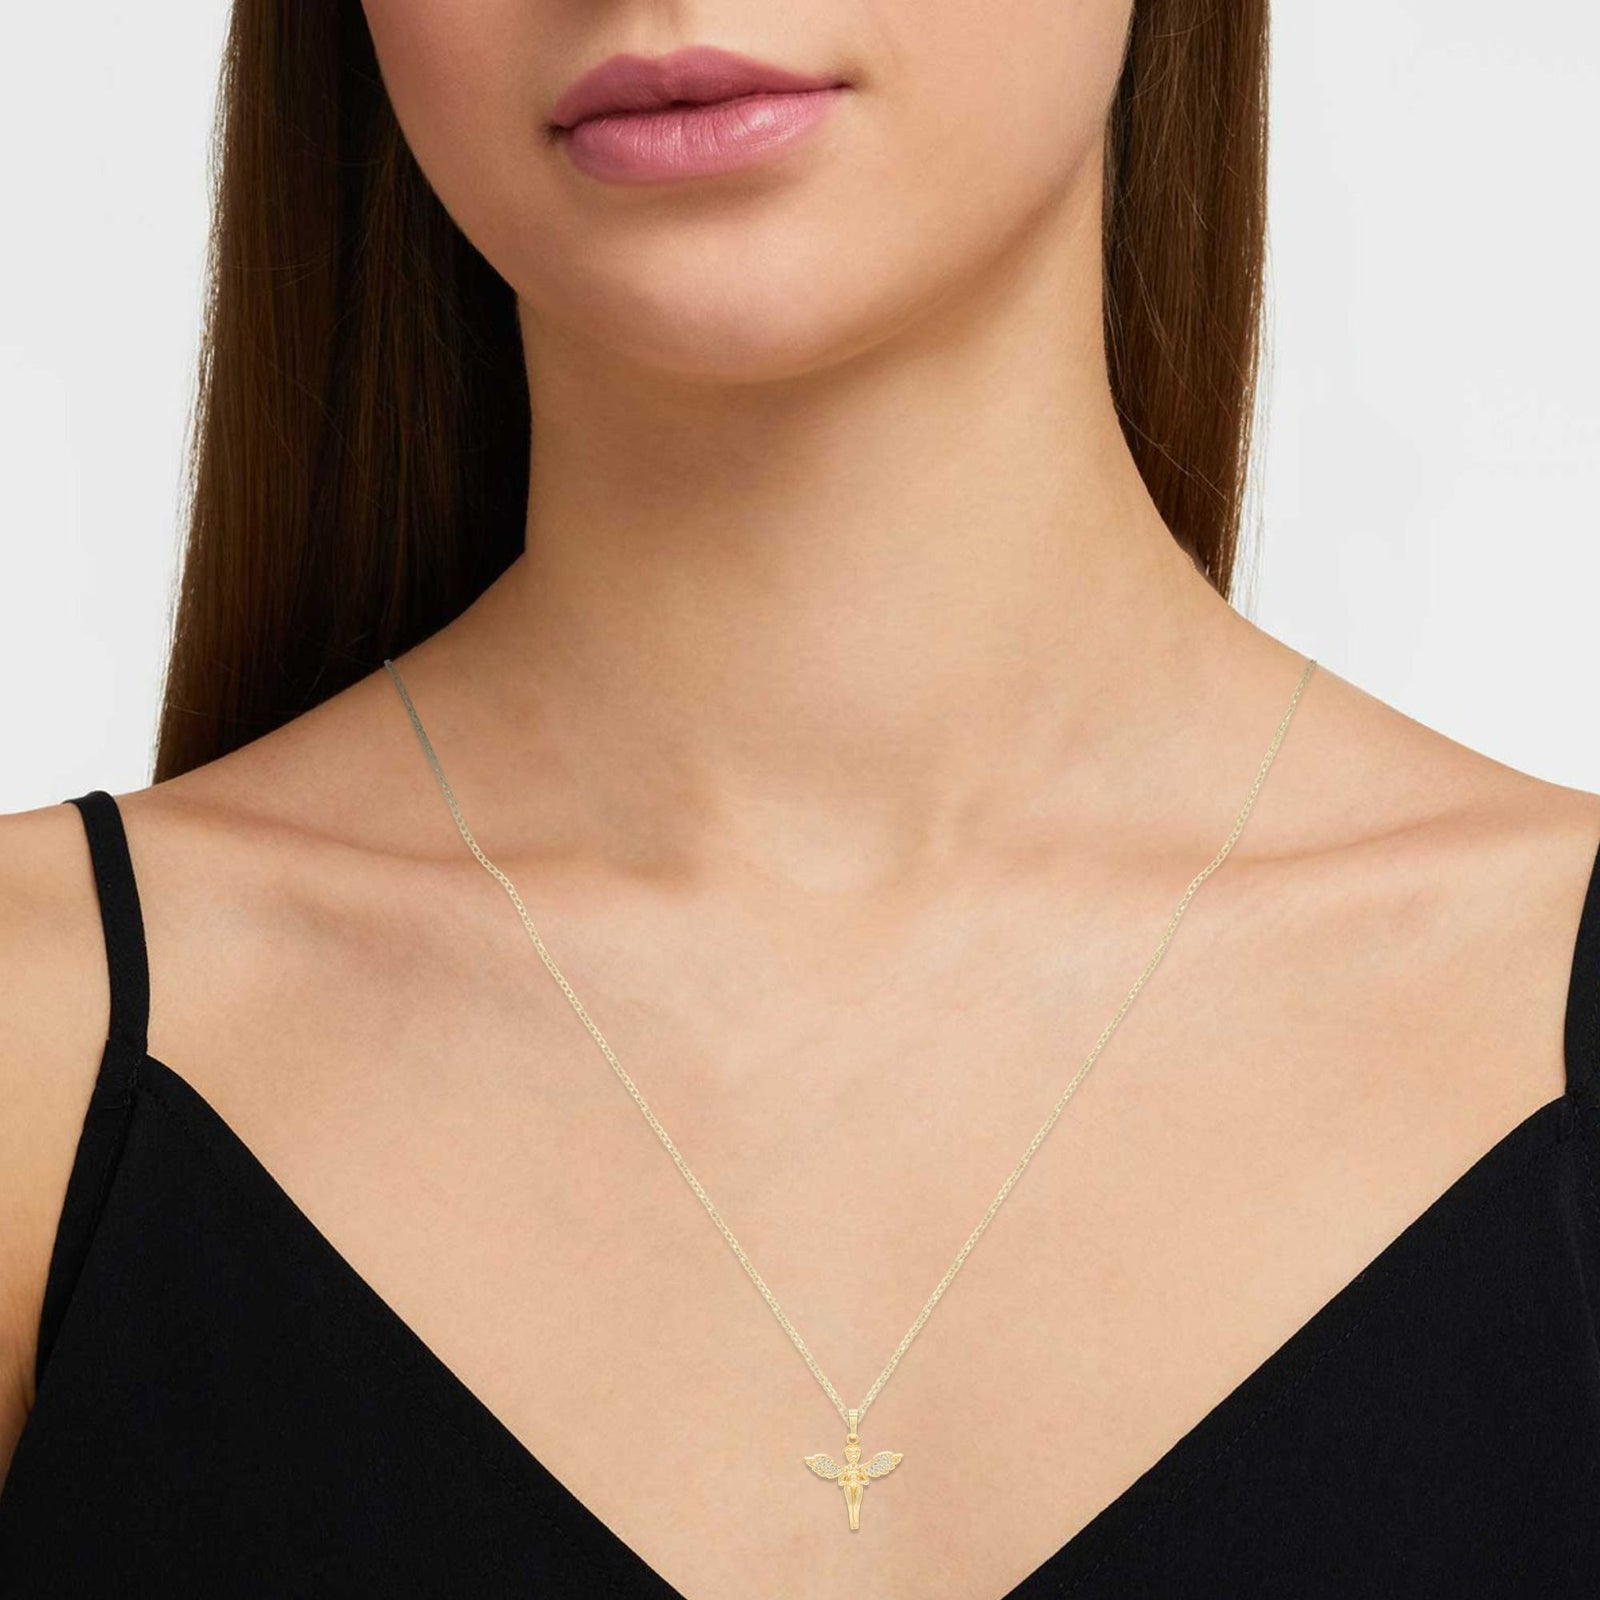 Angel Cubic Zirconia Pendant With Necklace Set 14K Gold Filled